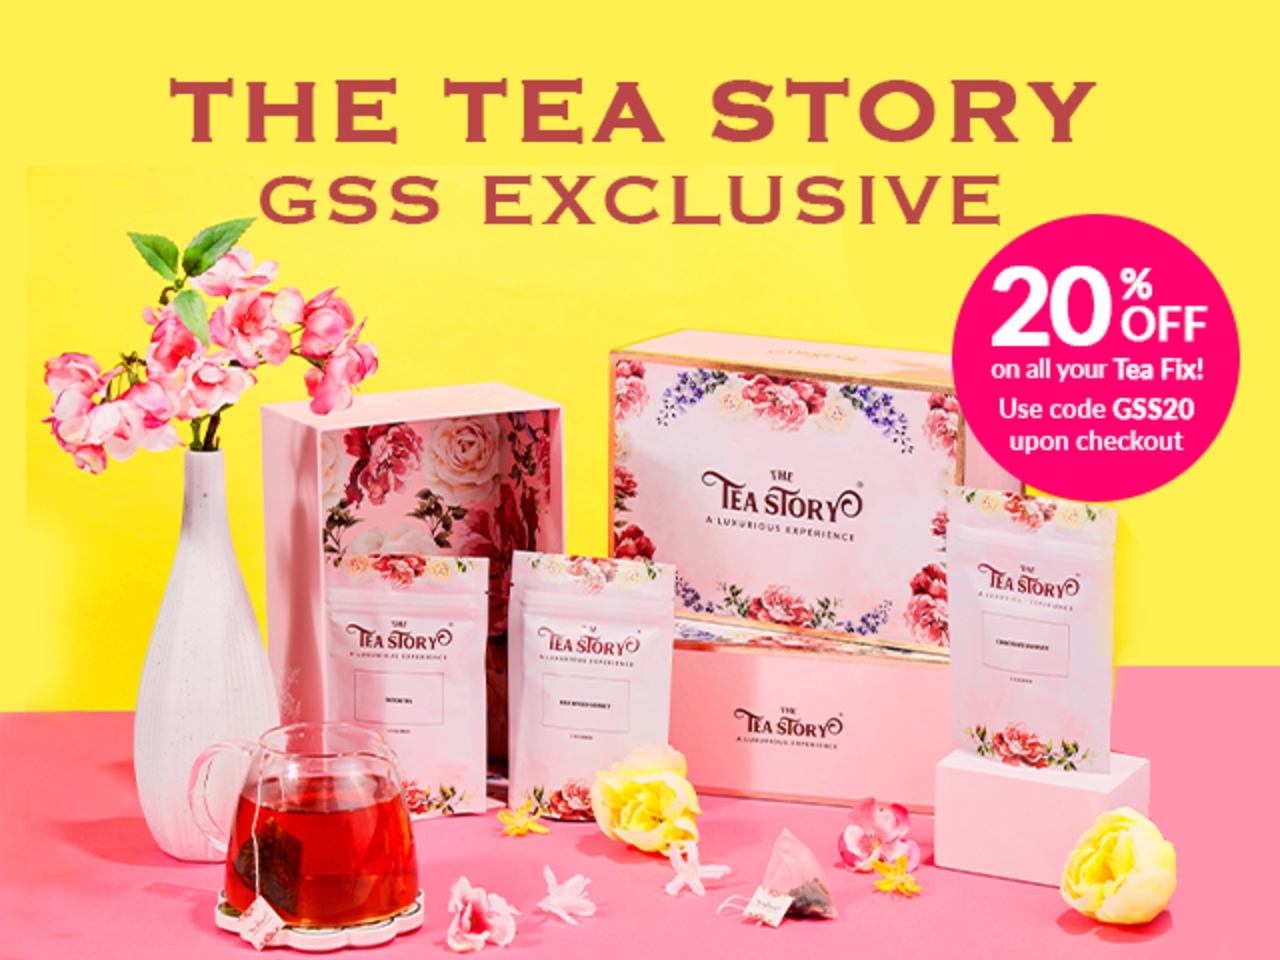 THE TEA STORY GSS EXCLUSIVE DEAL